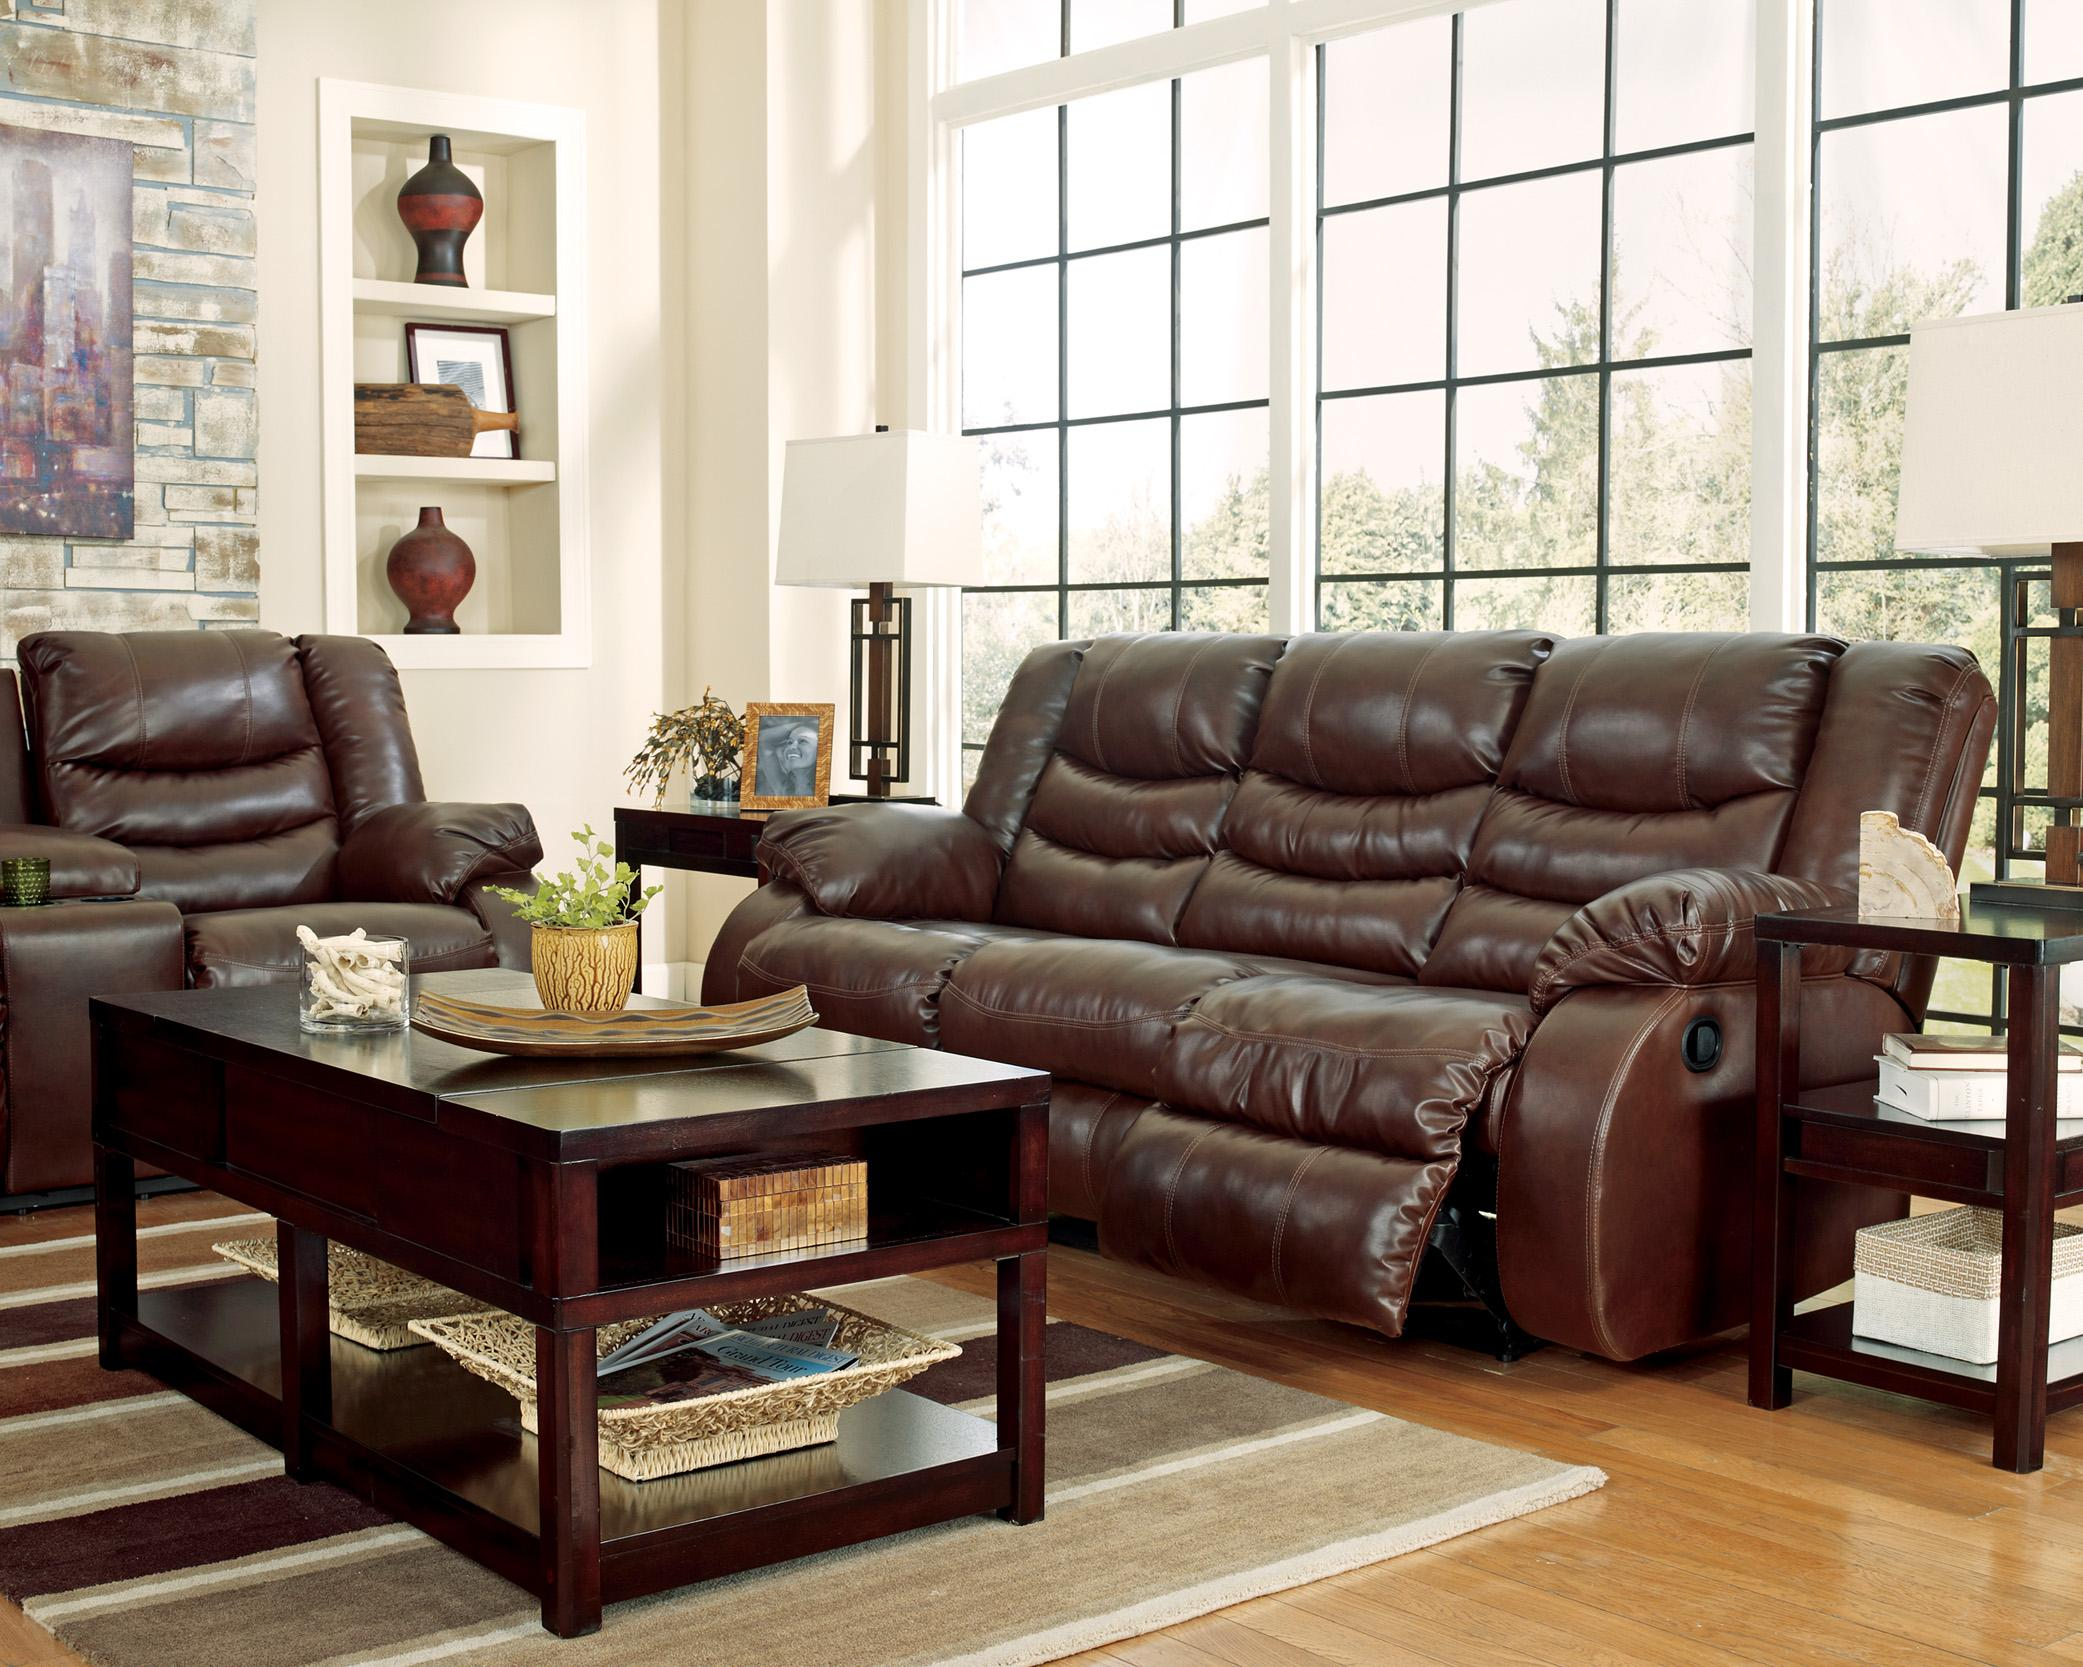 Benchcraft By Ashley Linebacker DuraBlend   Espresso Contemporary Reclining  Sofa With Pillow Arms | A1 Furniture U0026 Mattress | Reclining Sofa